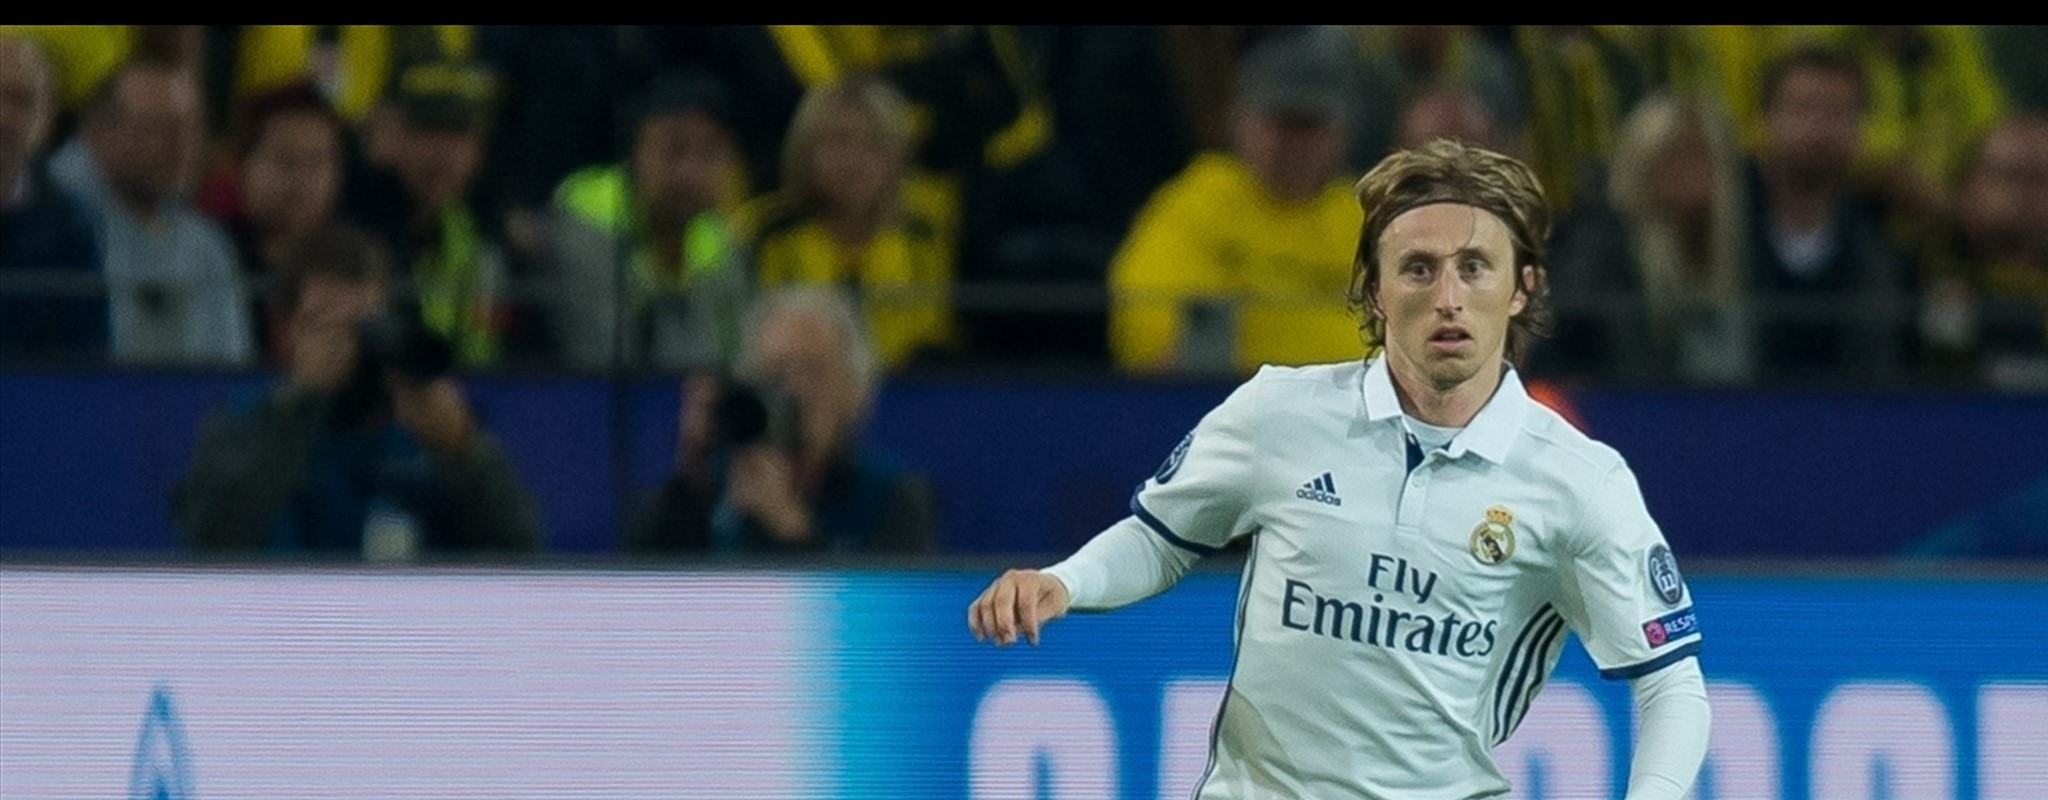 Modrić out with Casemiro: How will Madrid adapt?